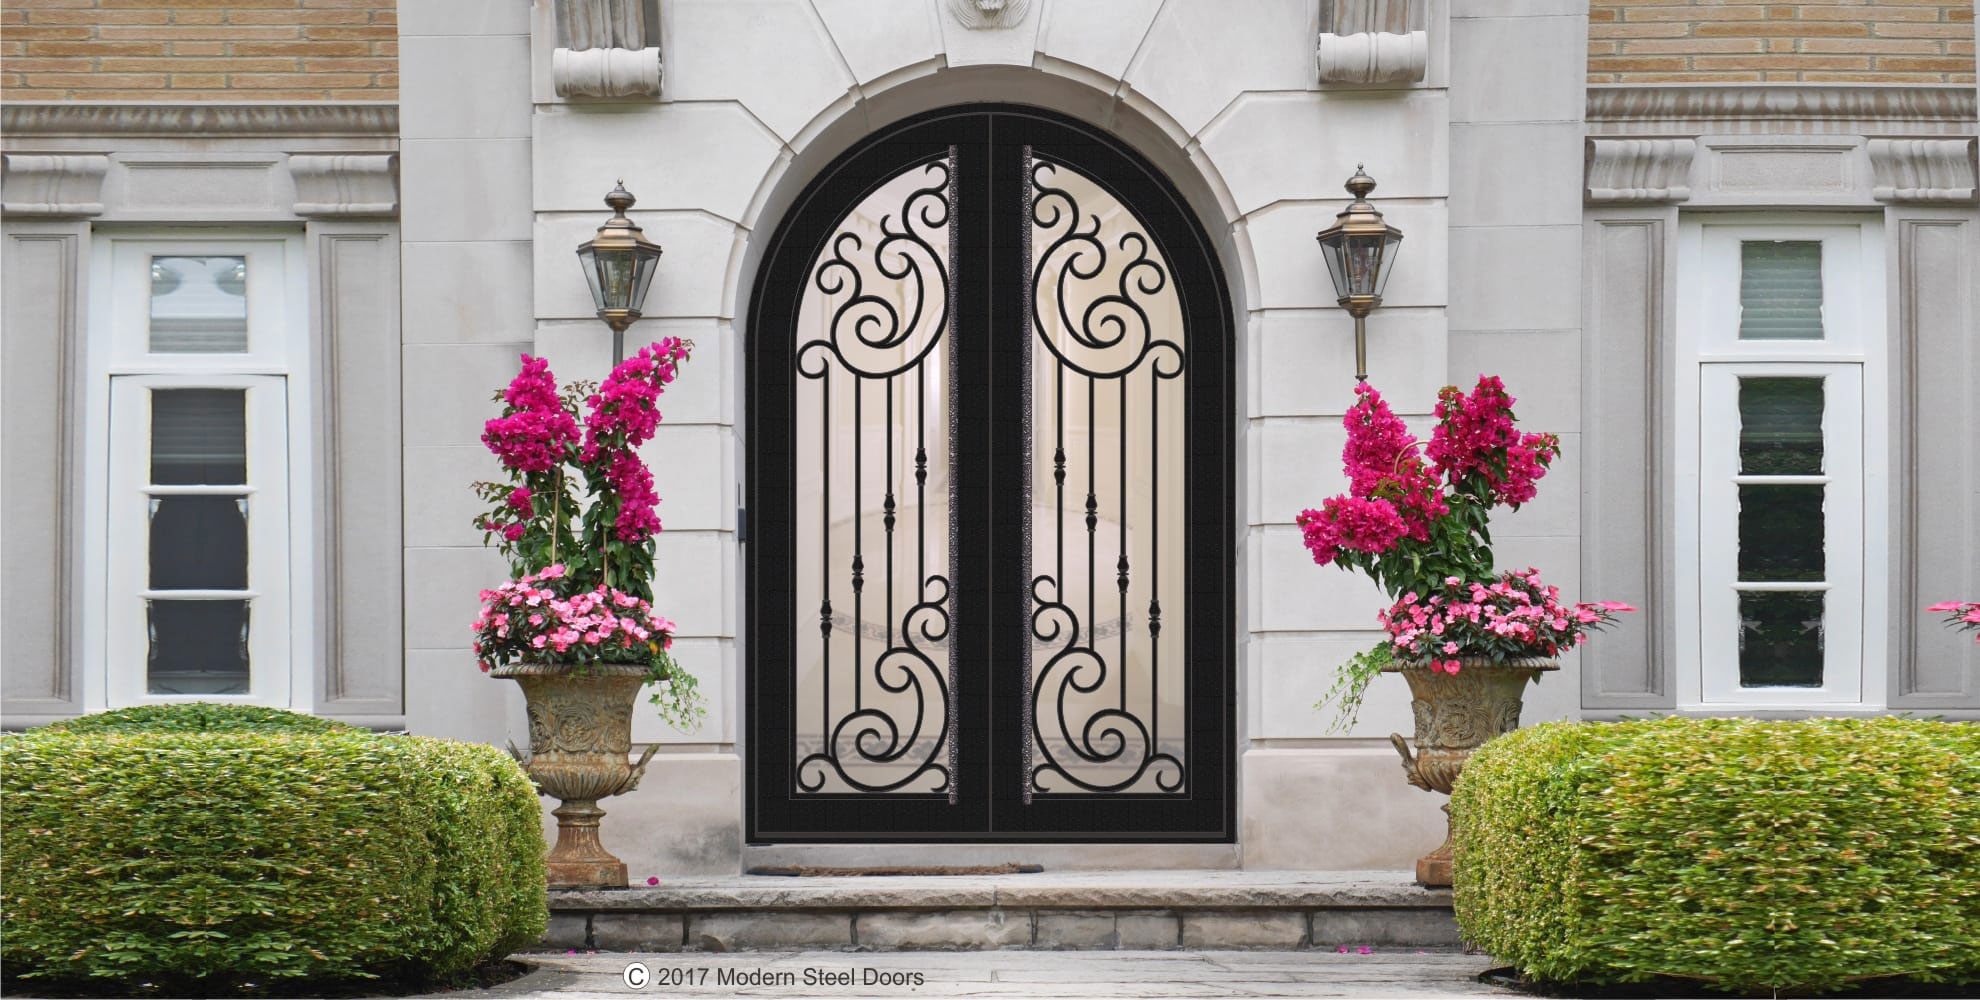 IRON DOORS WITH DECORATIVE GLASS - HOME IMPROVEMENT OUTLET